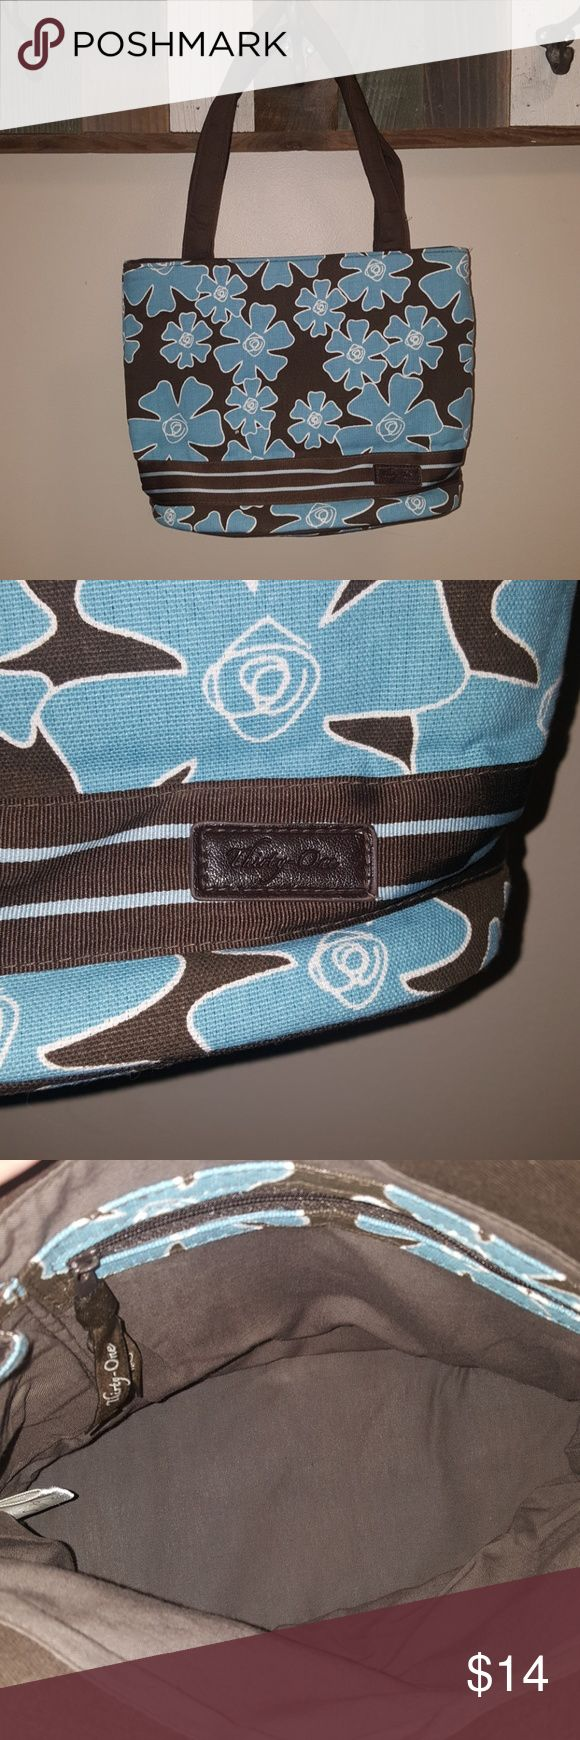 NWOT THIRTY ONE PURSE NWOT THIRTY ONE PURSE Thirty one Bags Satchels